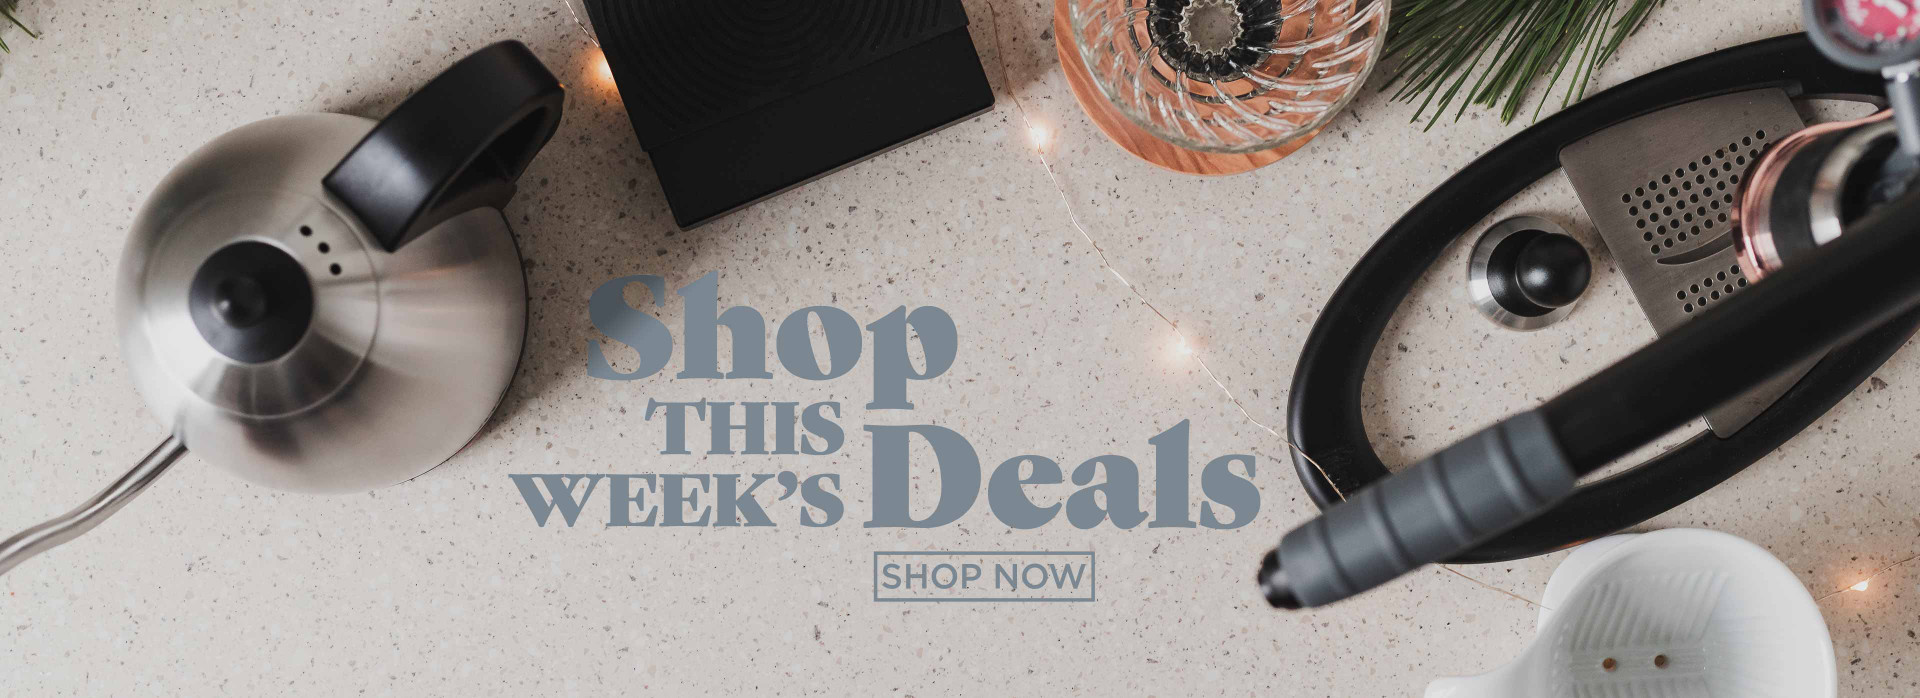 Shop This weeks deals